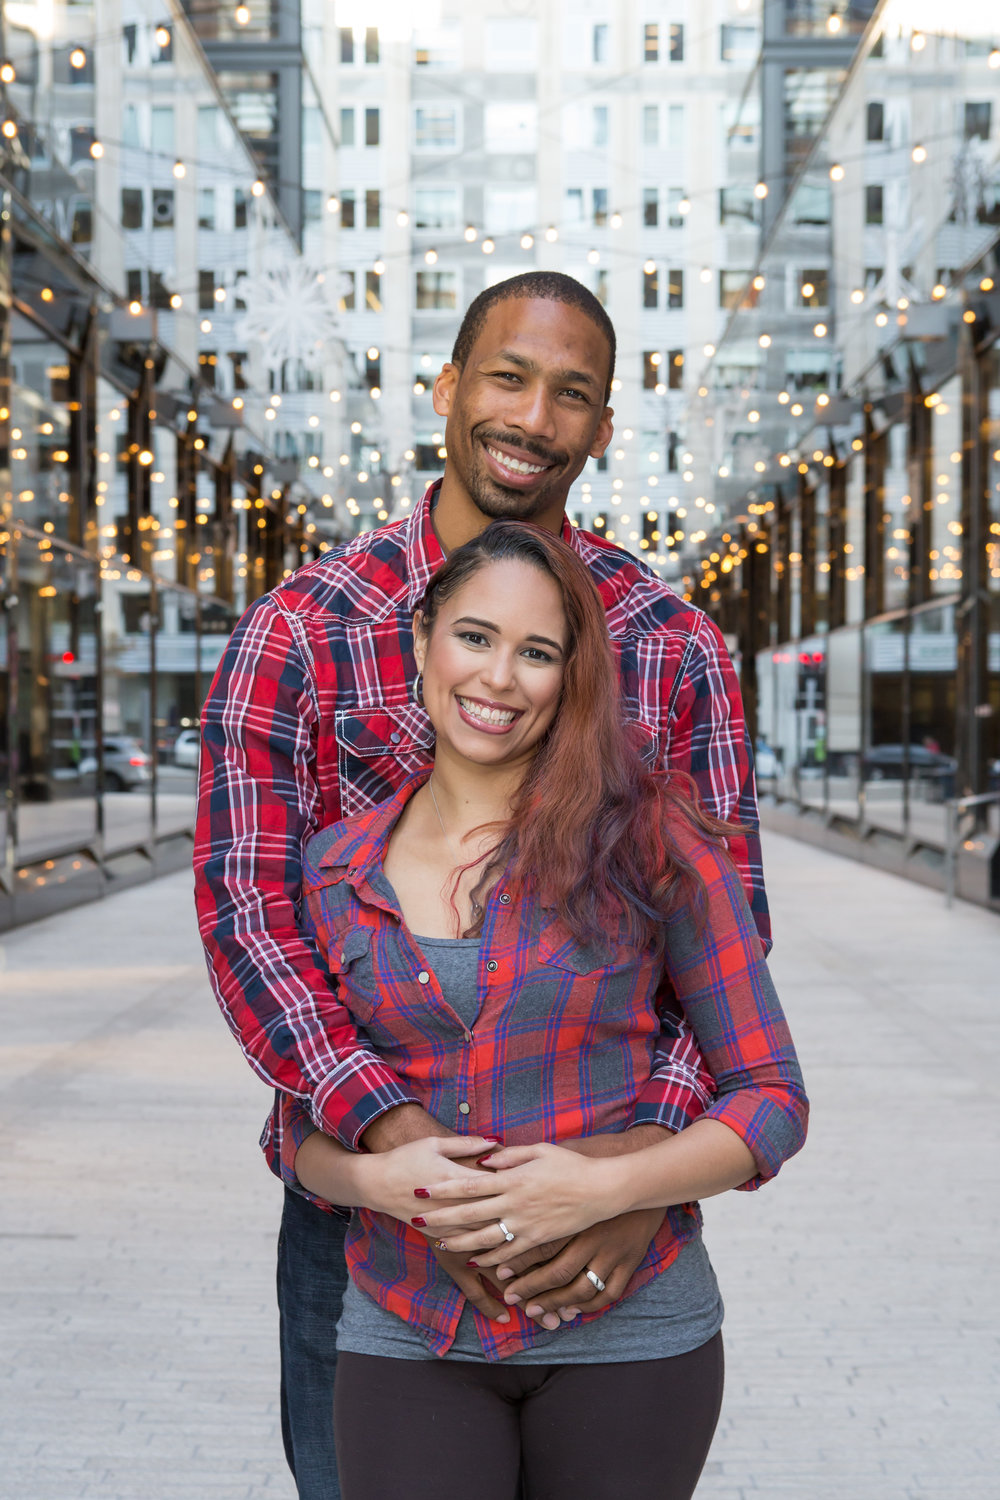 Couple wearing plaid shirts embracing while looking at the camera